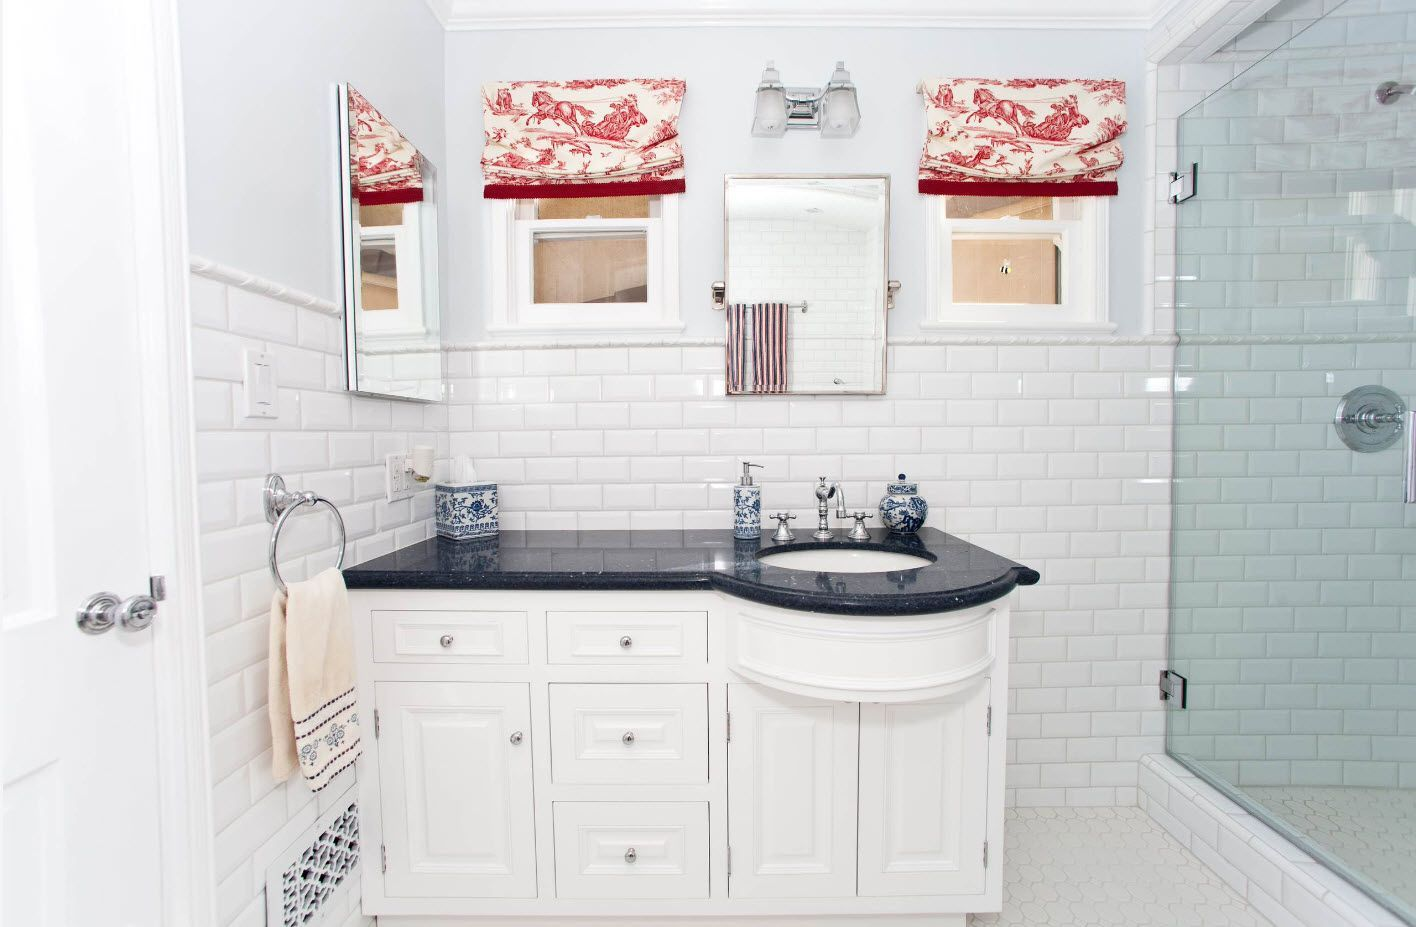 Small Bathroom Interior Space Optimization Ideas & Layout Photos 2017 white small tile and rounded counter of vanity